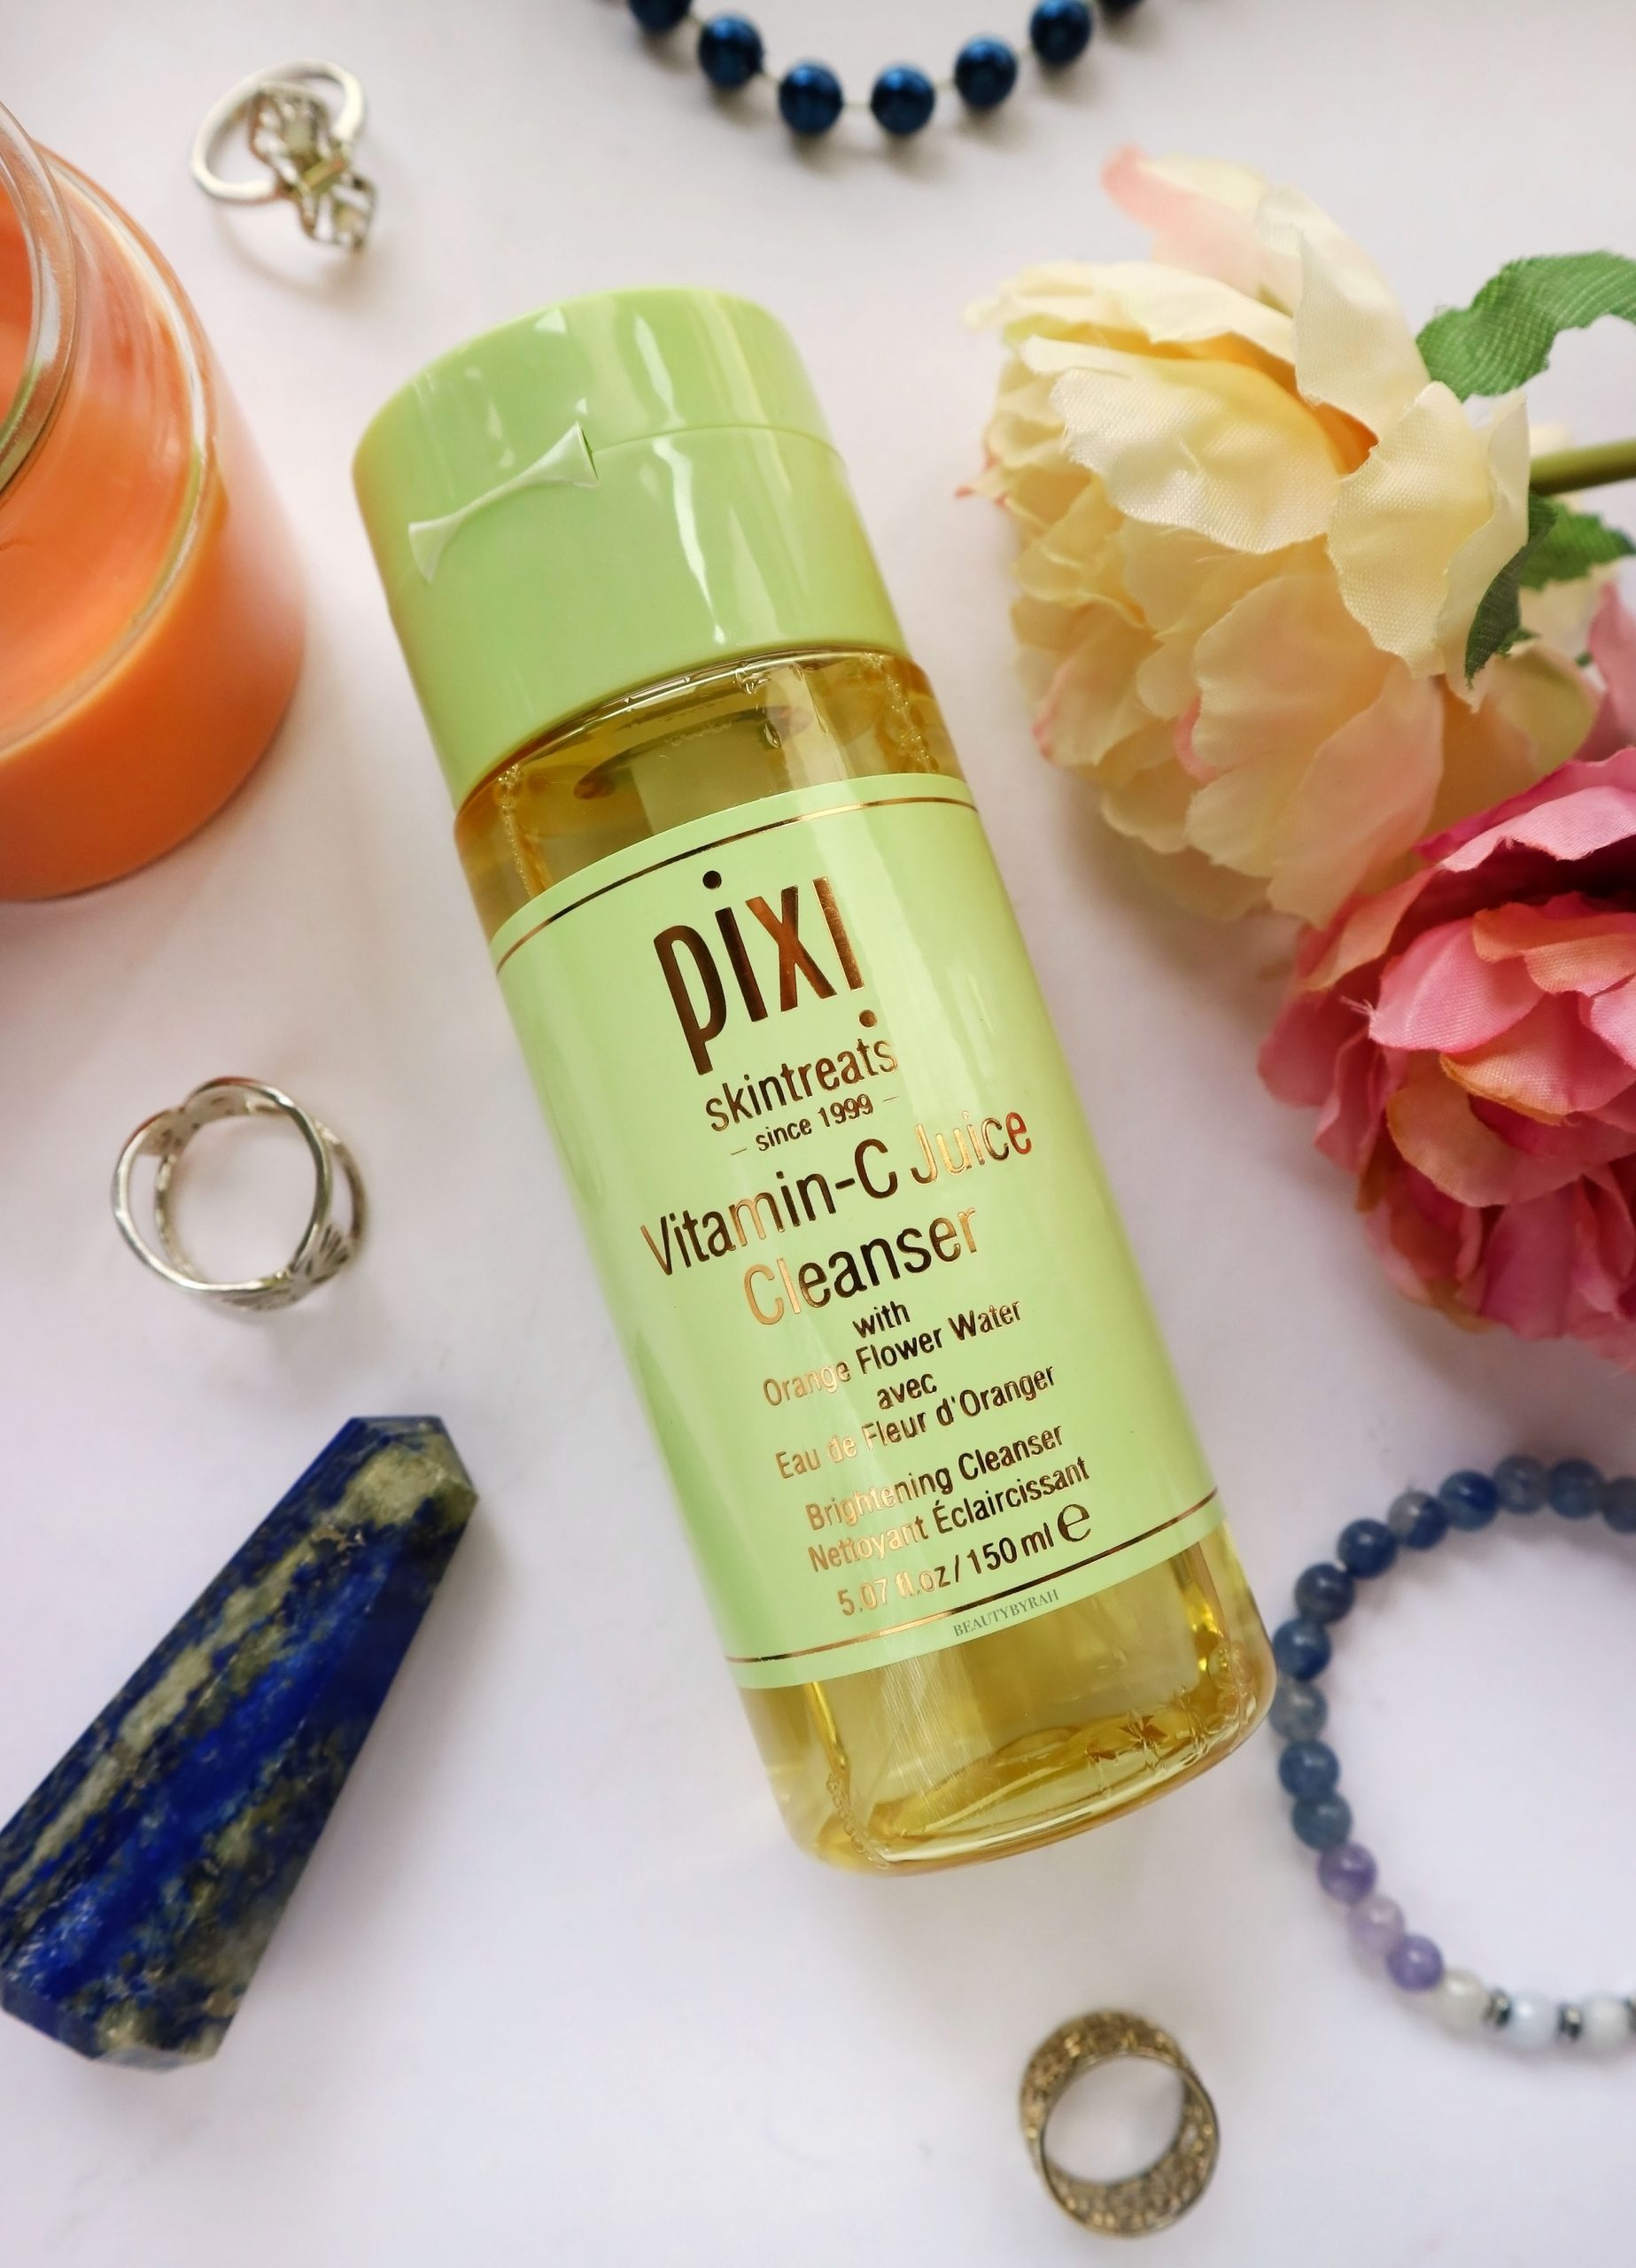 Pixi Vitamin C cleanser review.